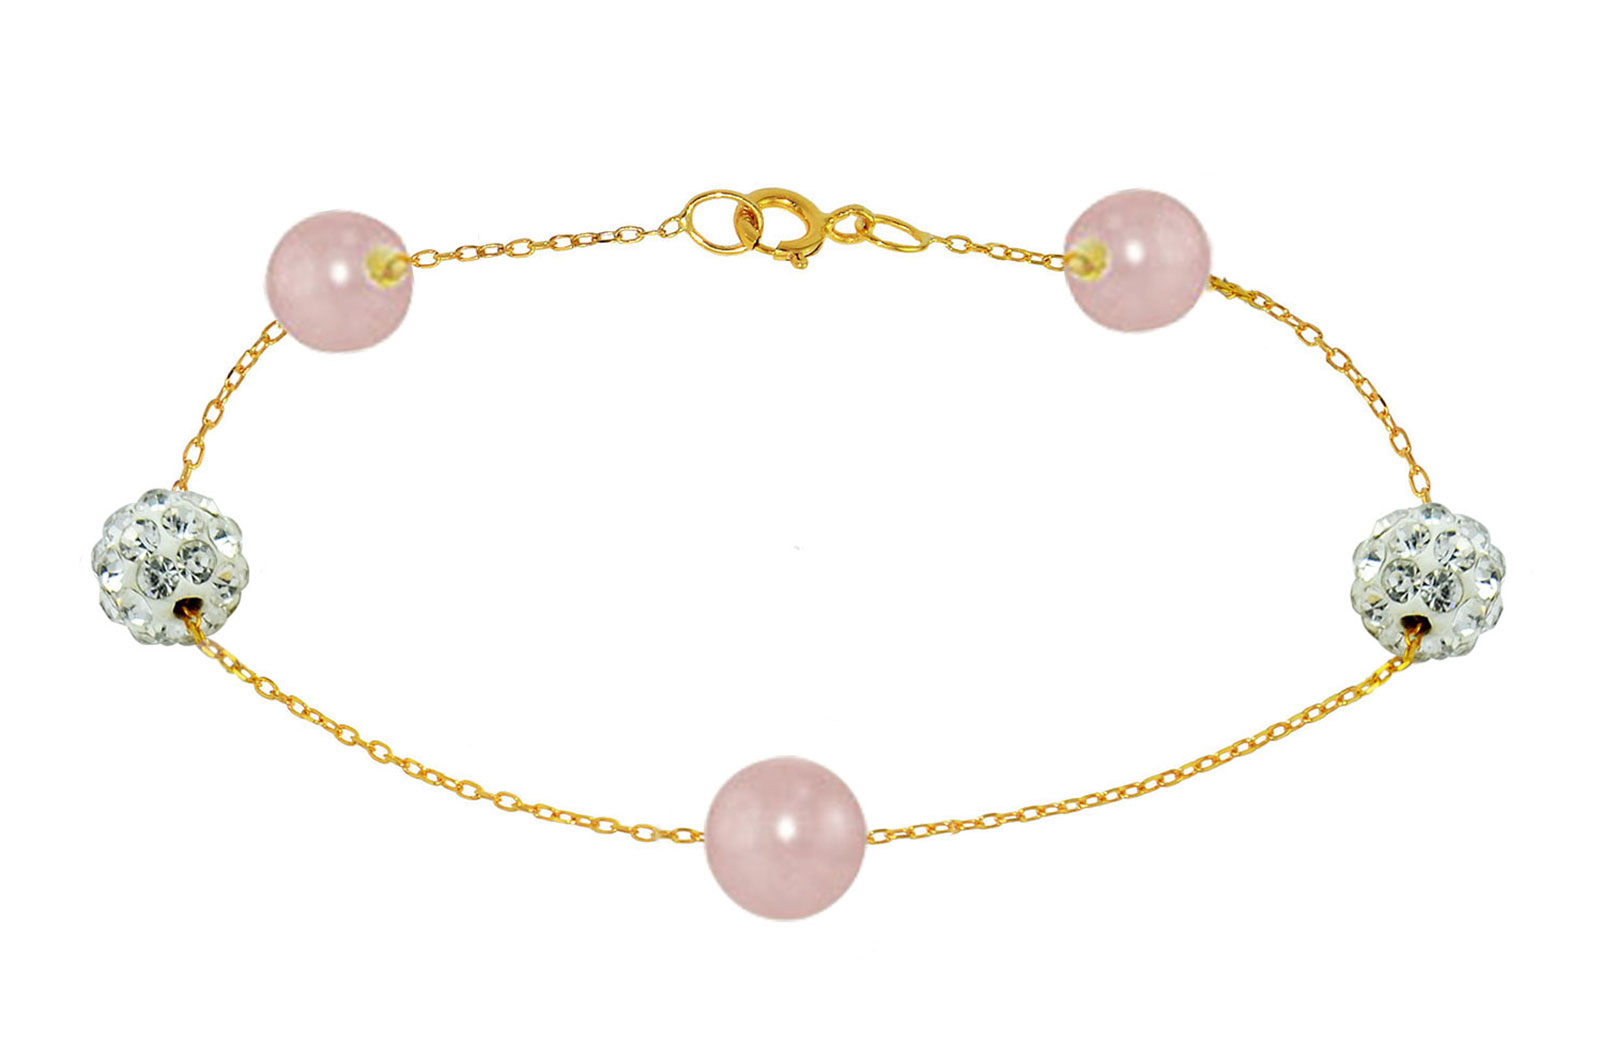 Vera Perla 18K Solid Gold Gradual Built-in 5-6mm Purple Pearls and Crystal Ball Bracelet